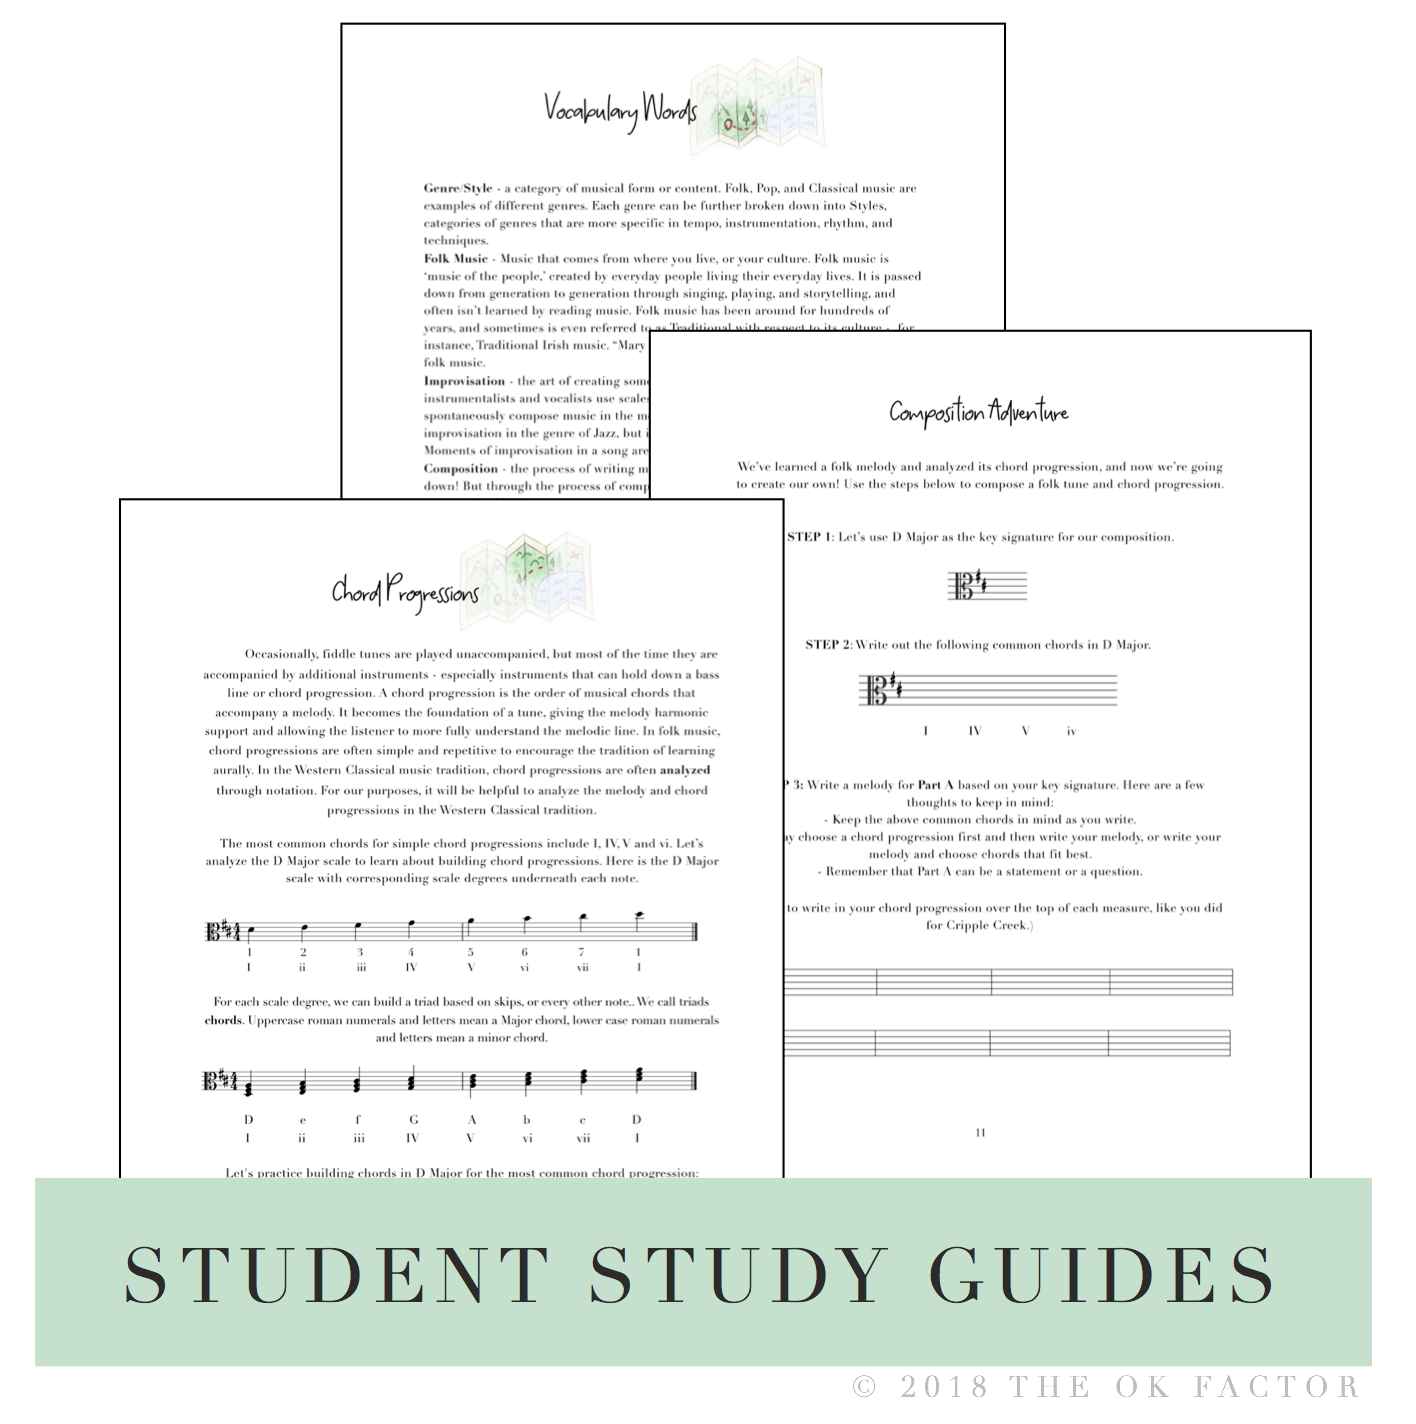 atlas sample study guides hs.png